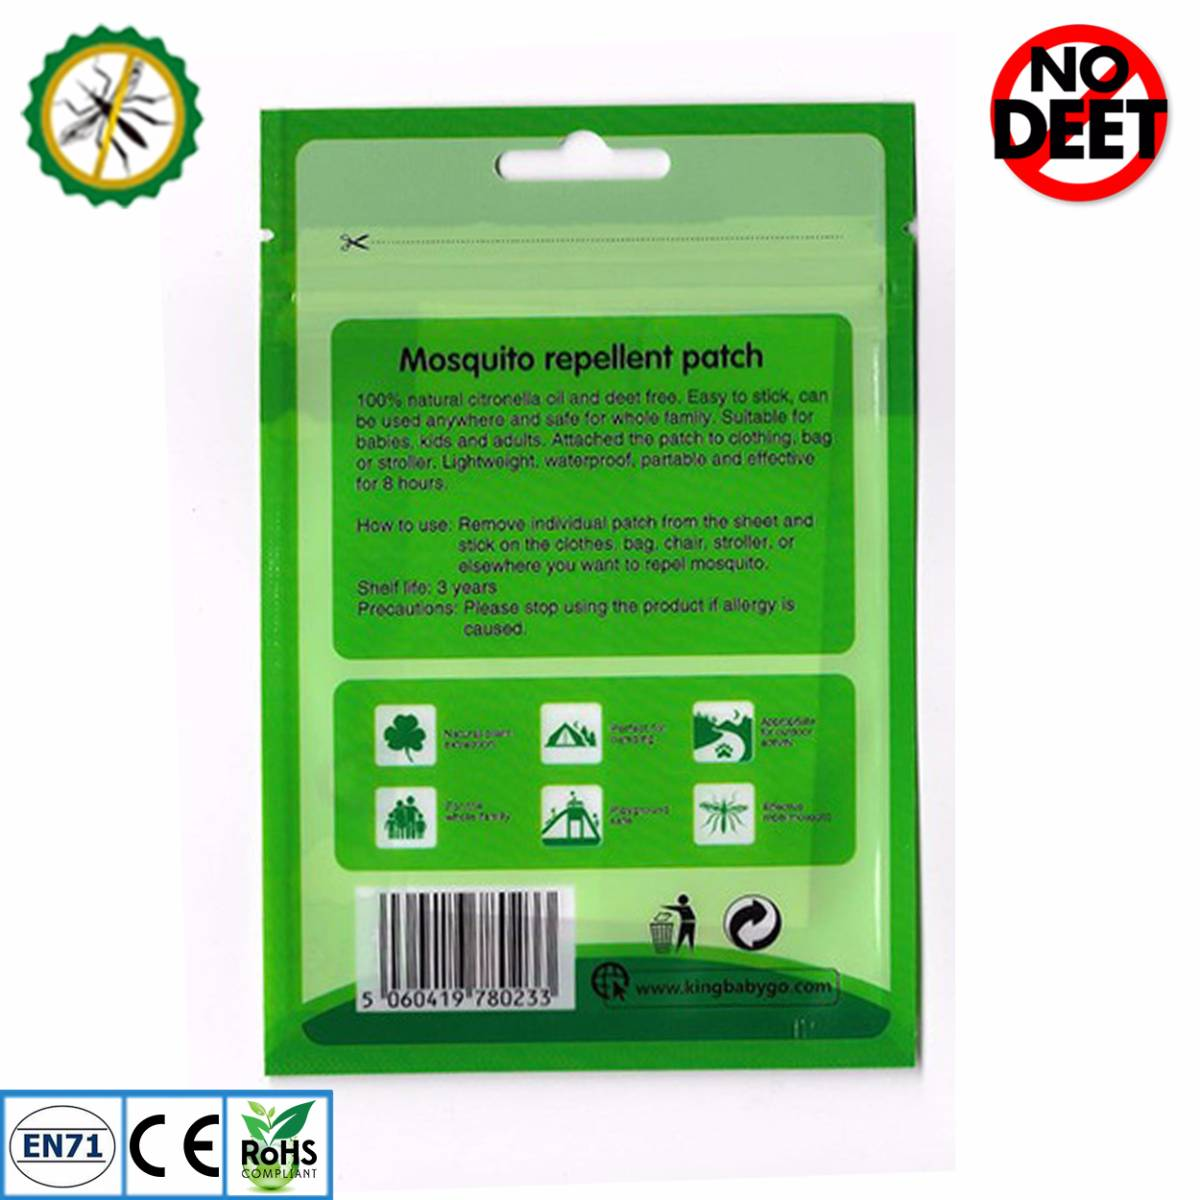 Babygo Mosquito Repellent Patch Smiley (sticker Anti Nyamuk)1